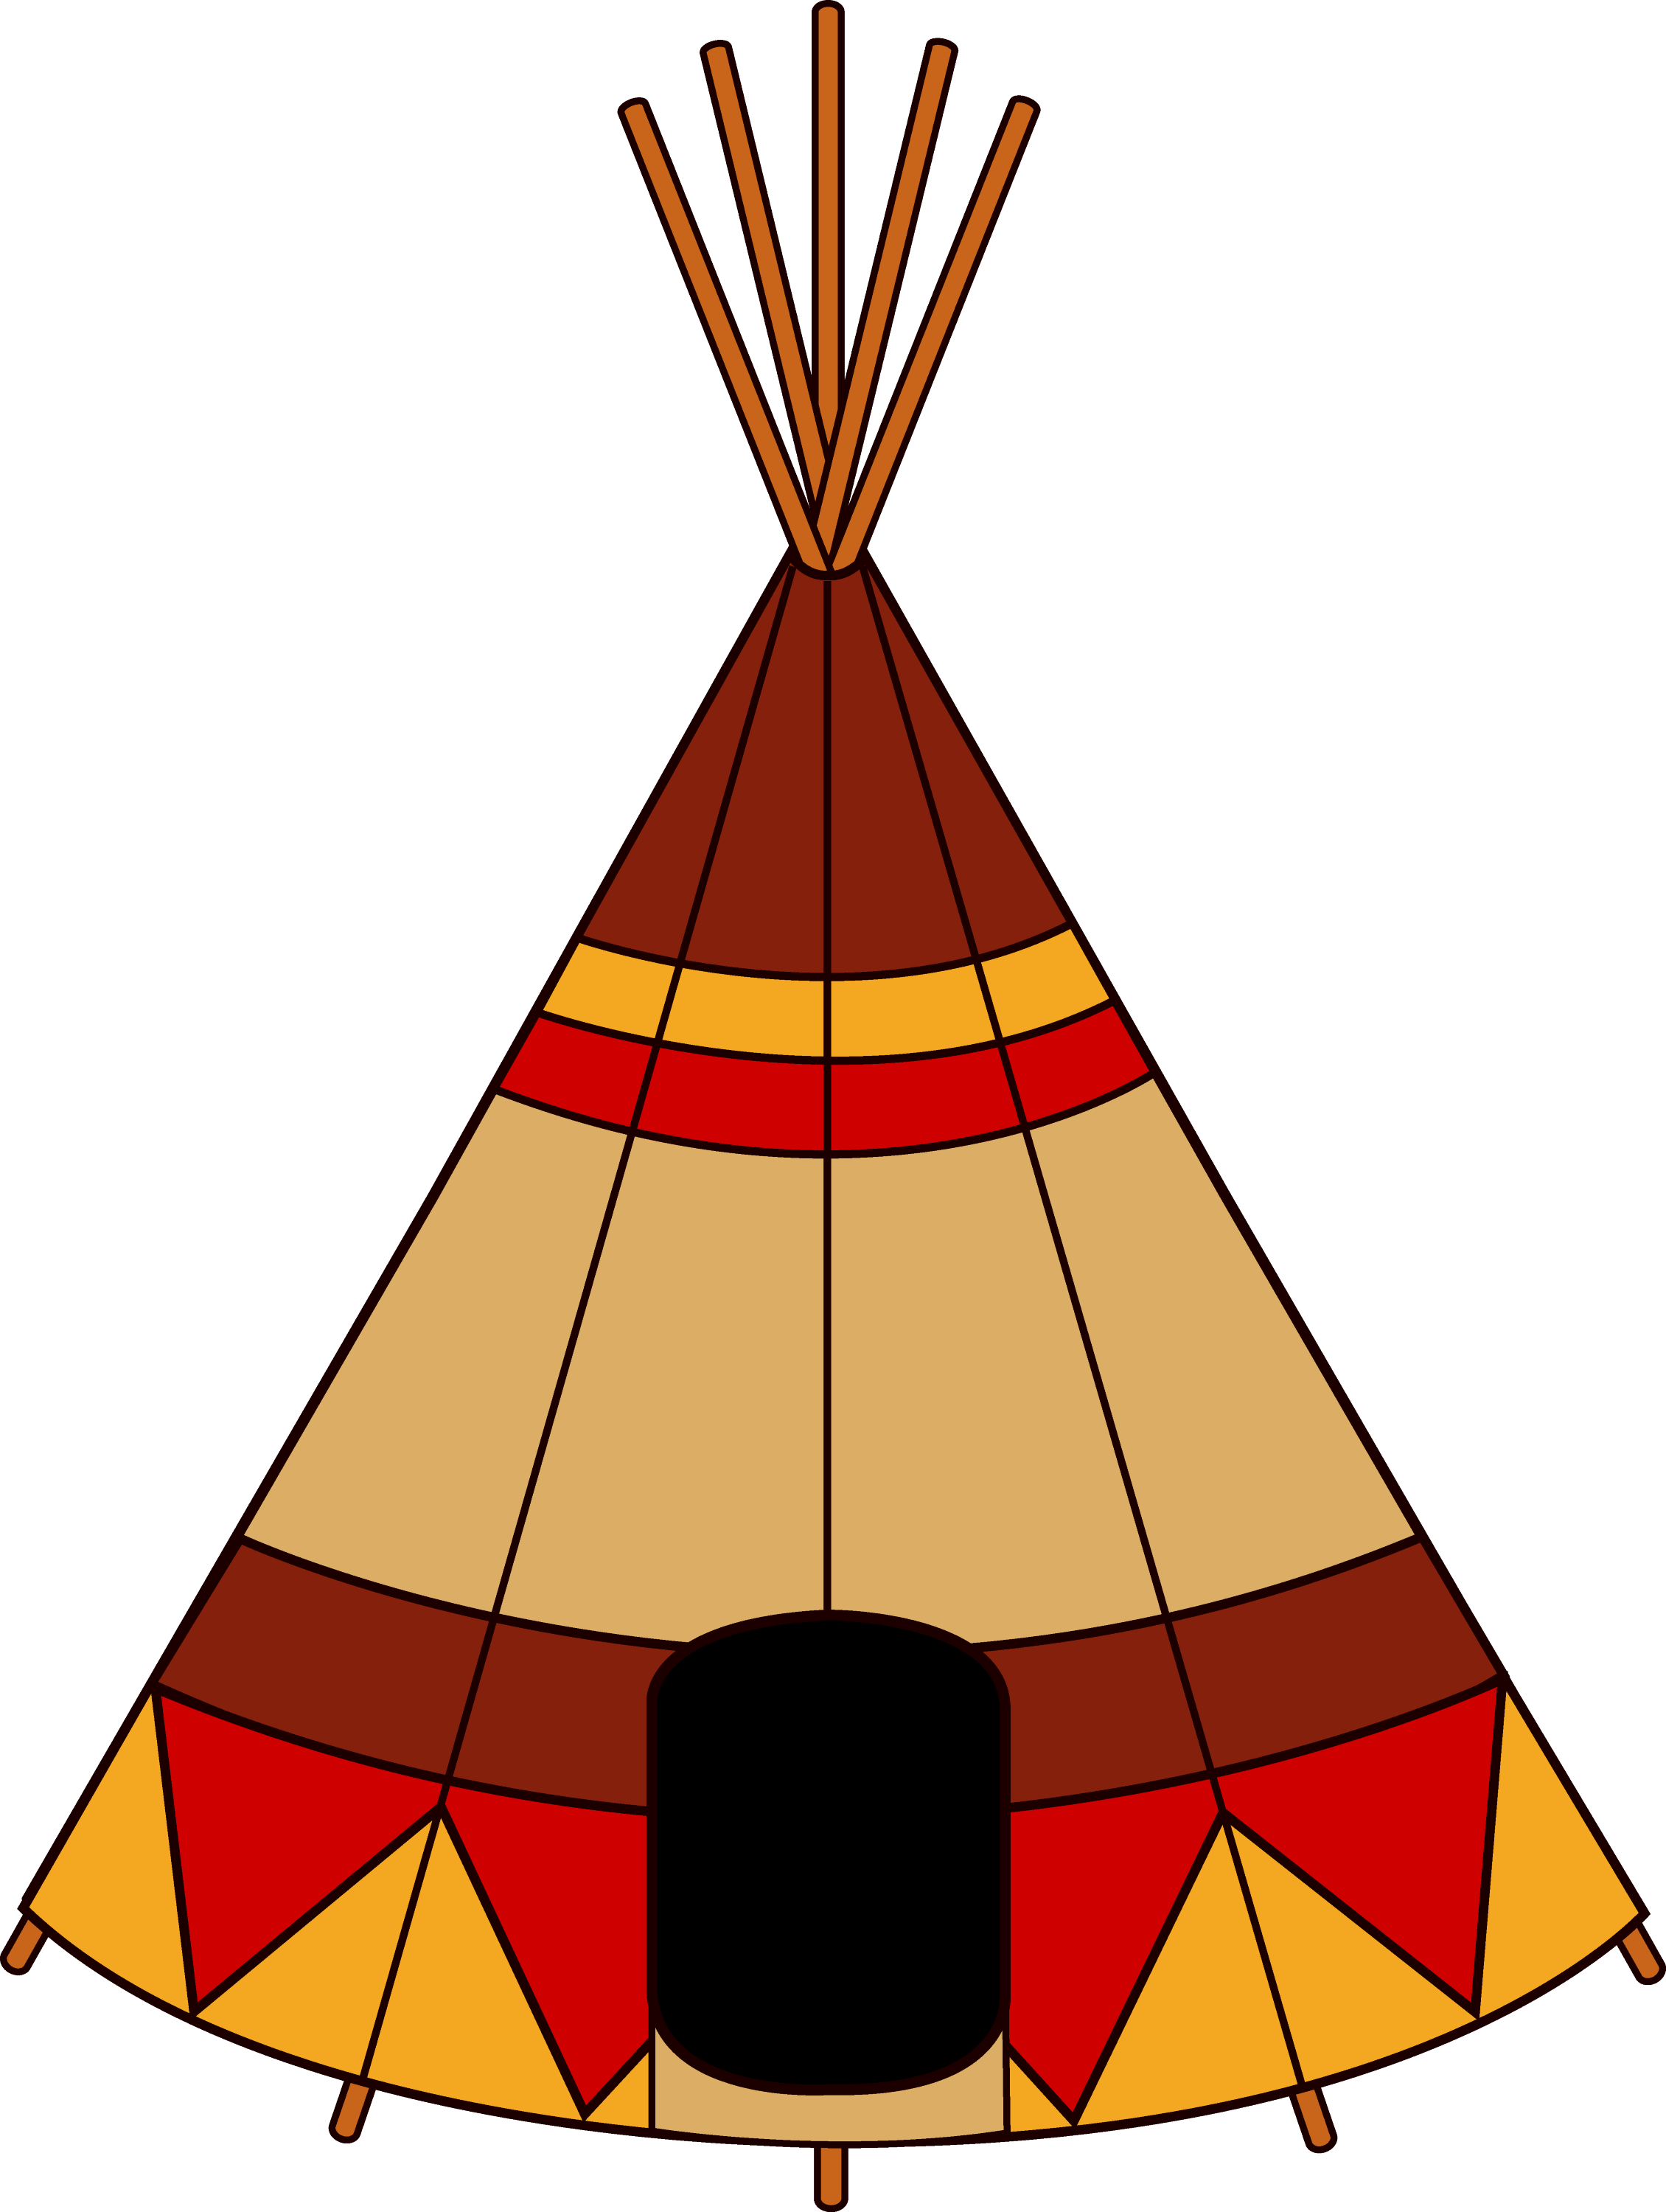 native american teepee free clip art rh sweetclipart com free clipart native american feather free printable native american clipart